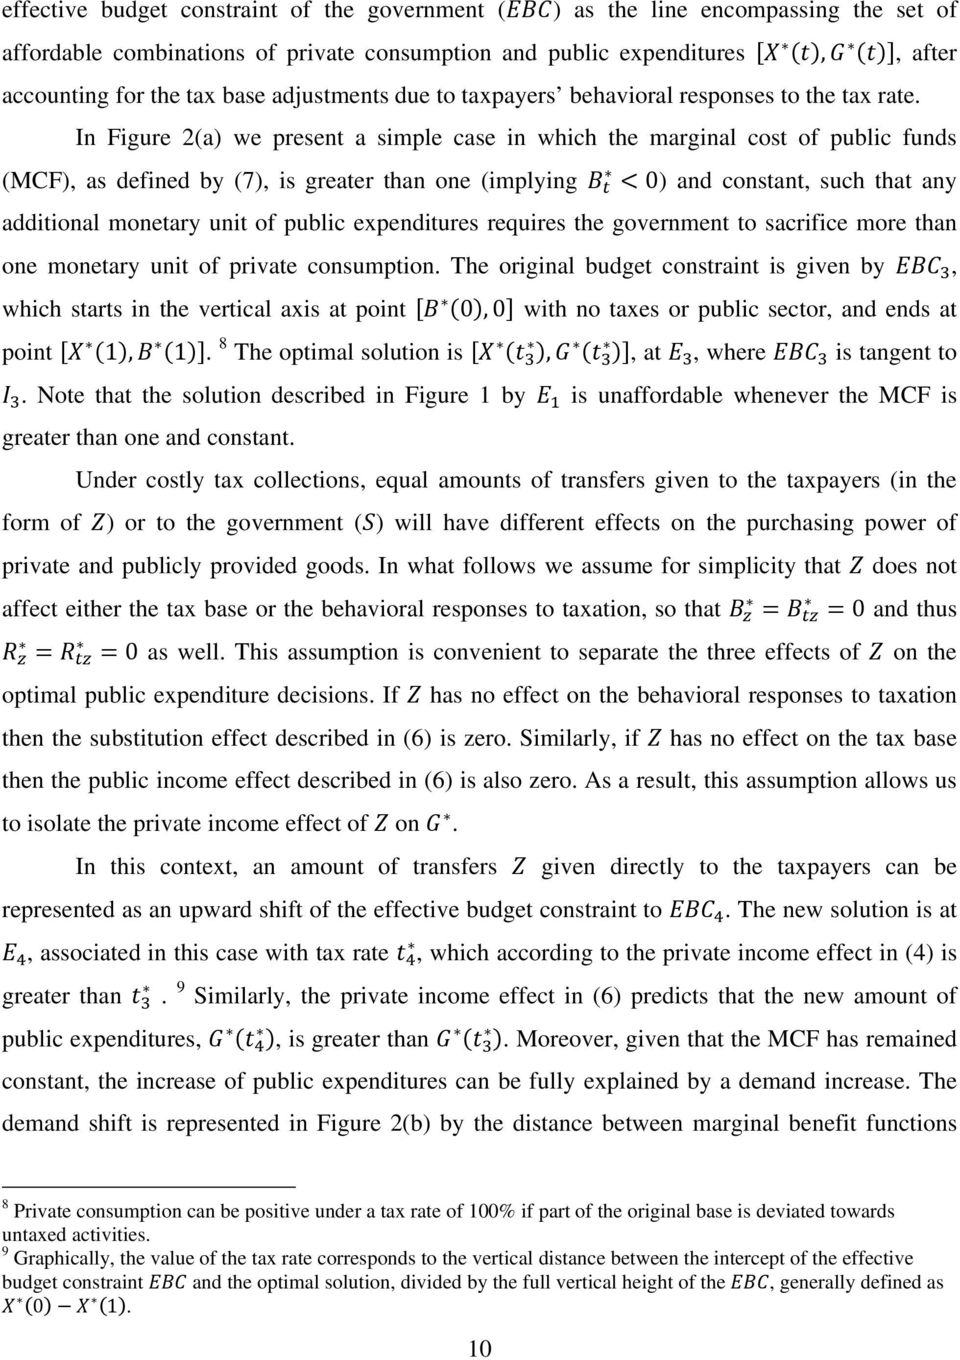 In Figure 2(a) we present a simple case in which the marginal cost of public funds (MCF), as defined by (7), is greater than one (implying 0) and constant, such that any additional monetary unit of